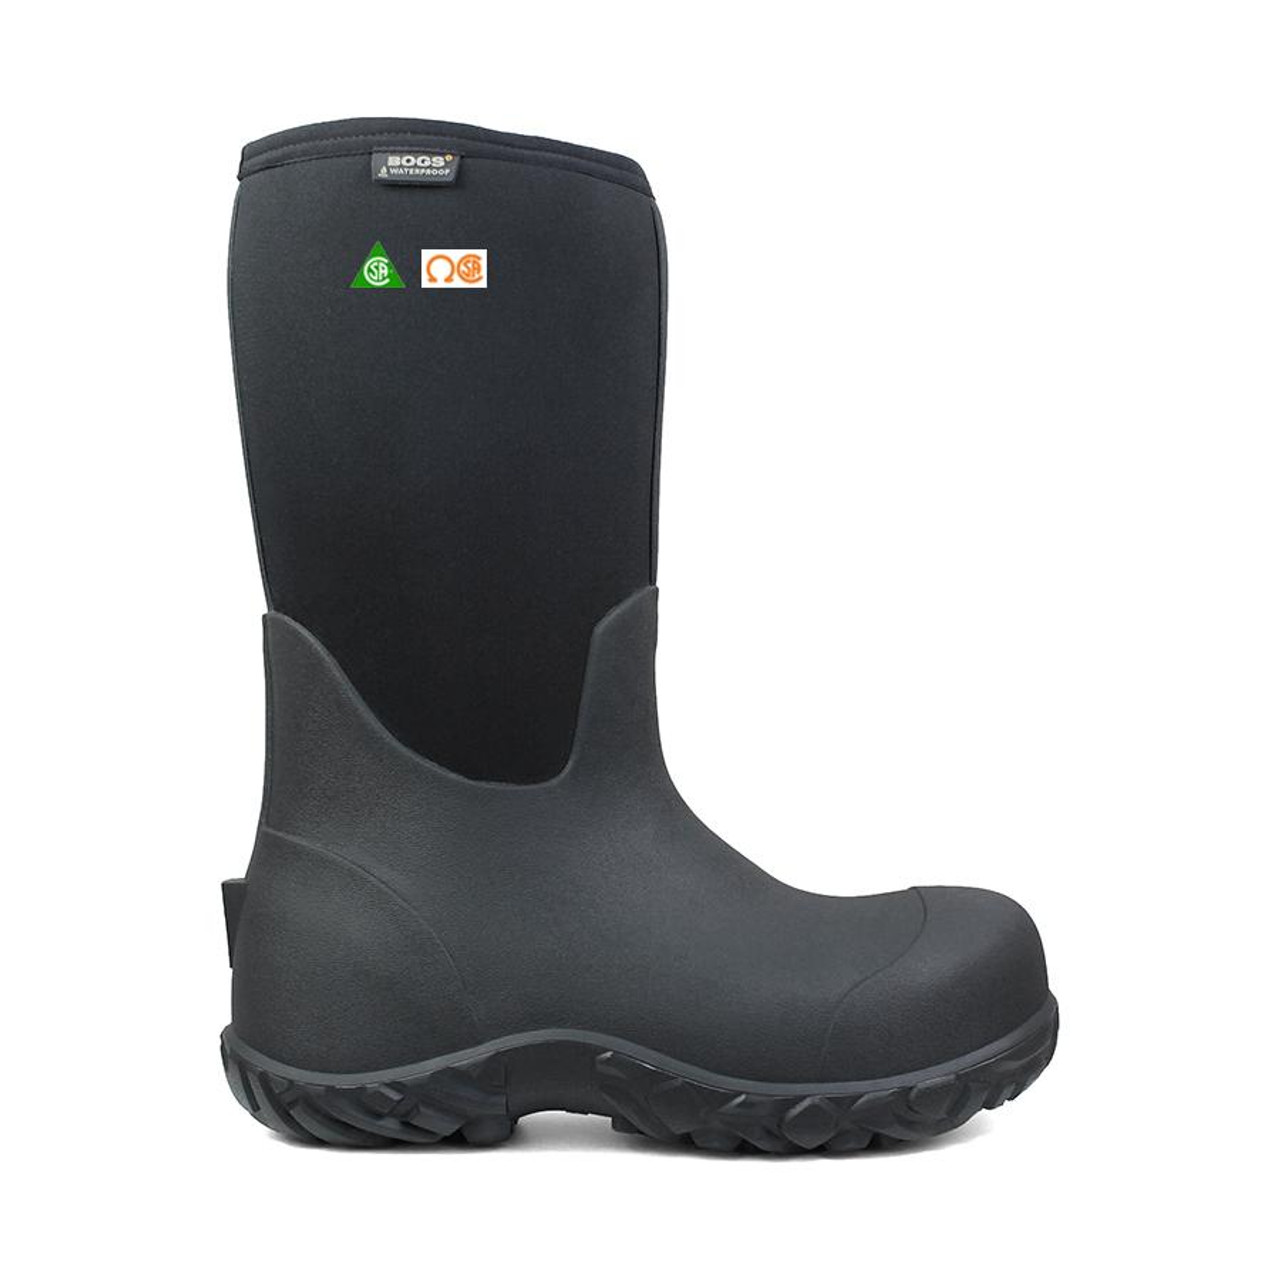 Bogs Workman CSA Rubber Safety Boot